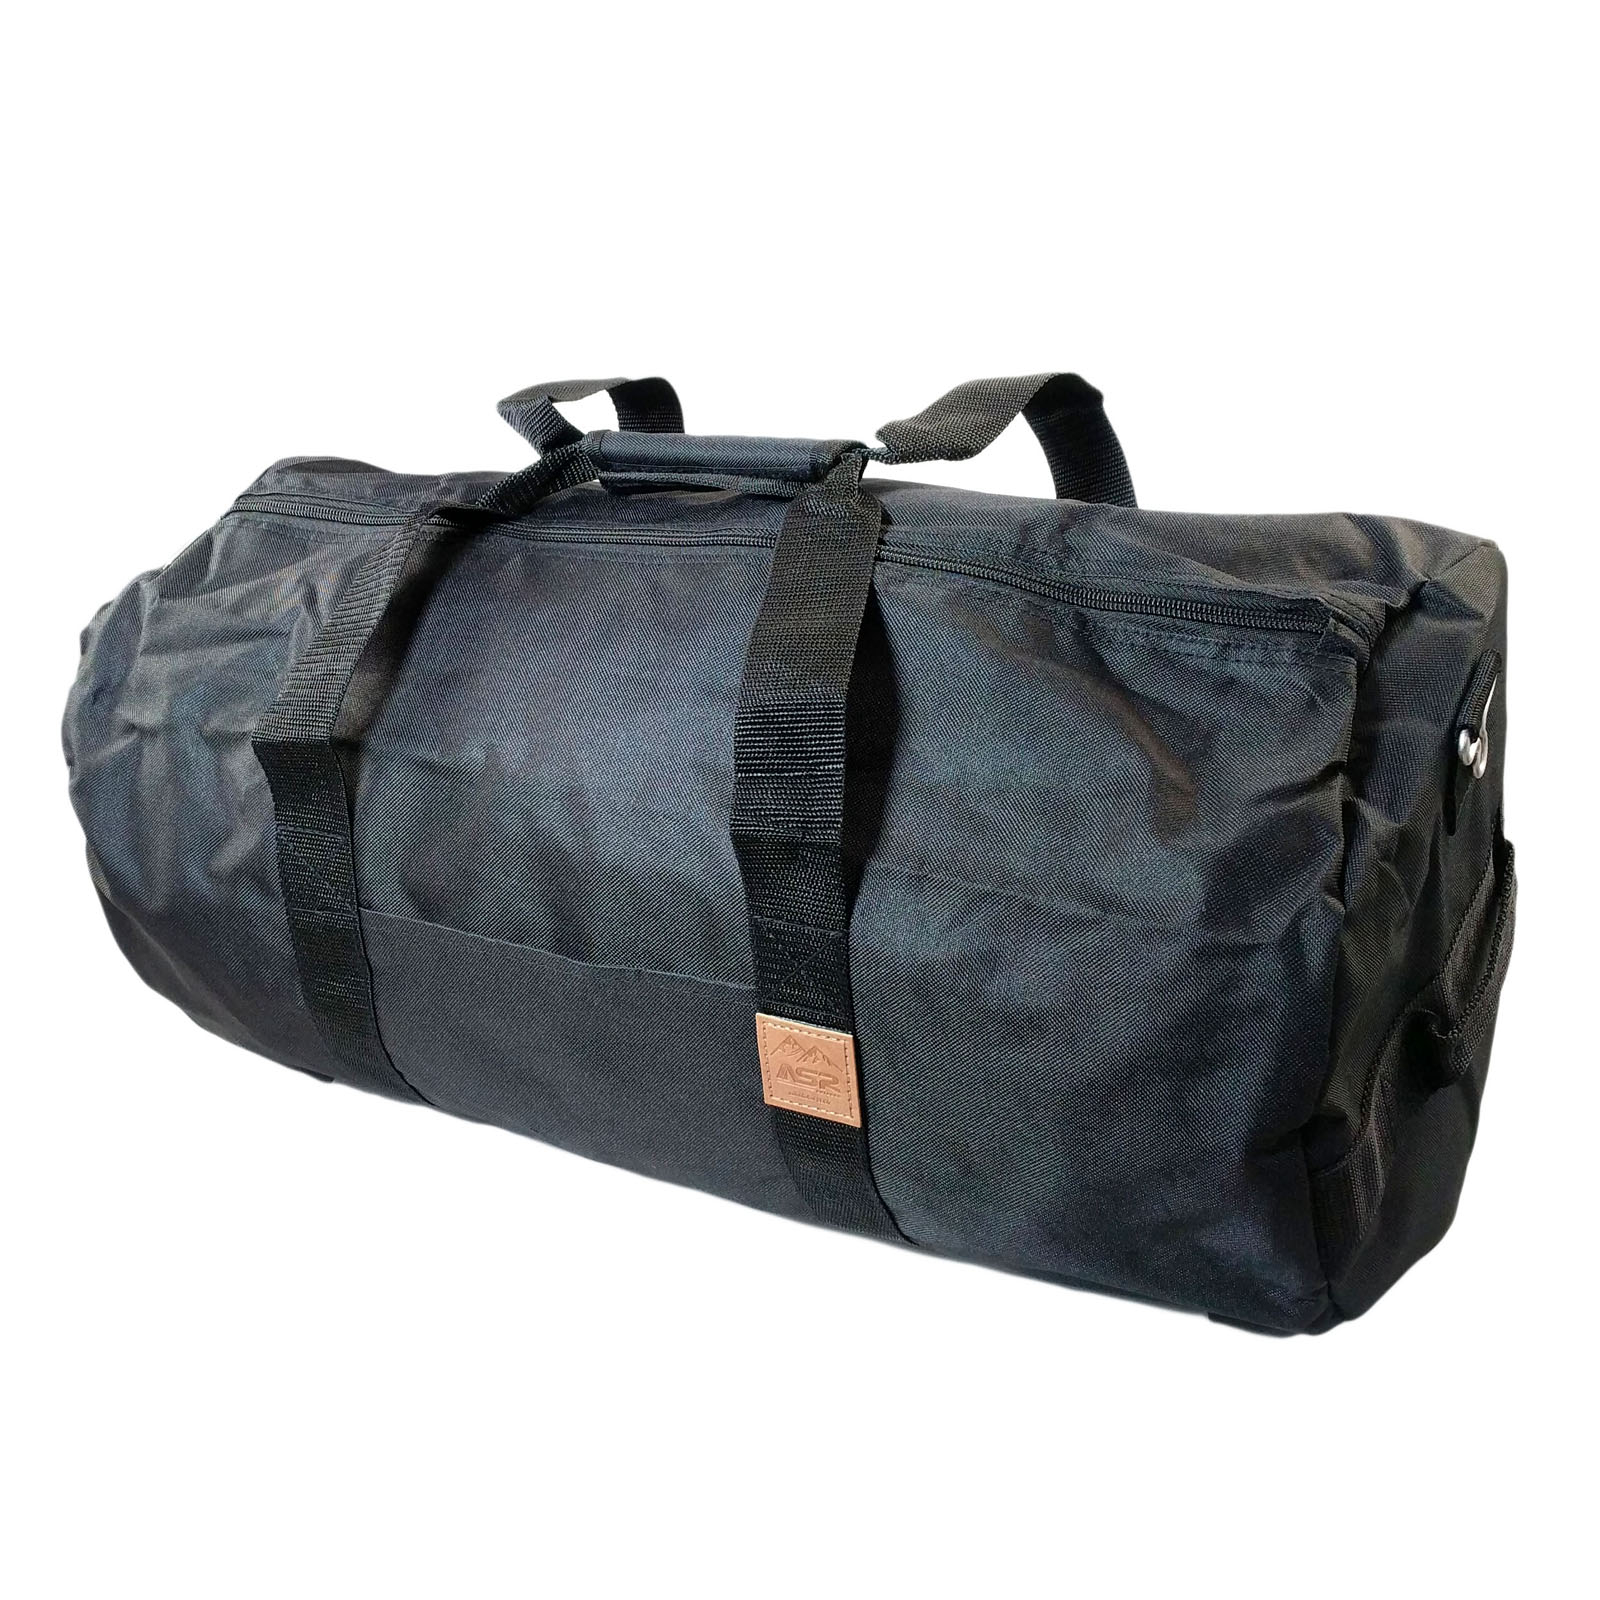 ASR Outdoor Classic Round Duffel Bag 23 Inch Matte Black